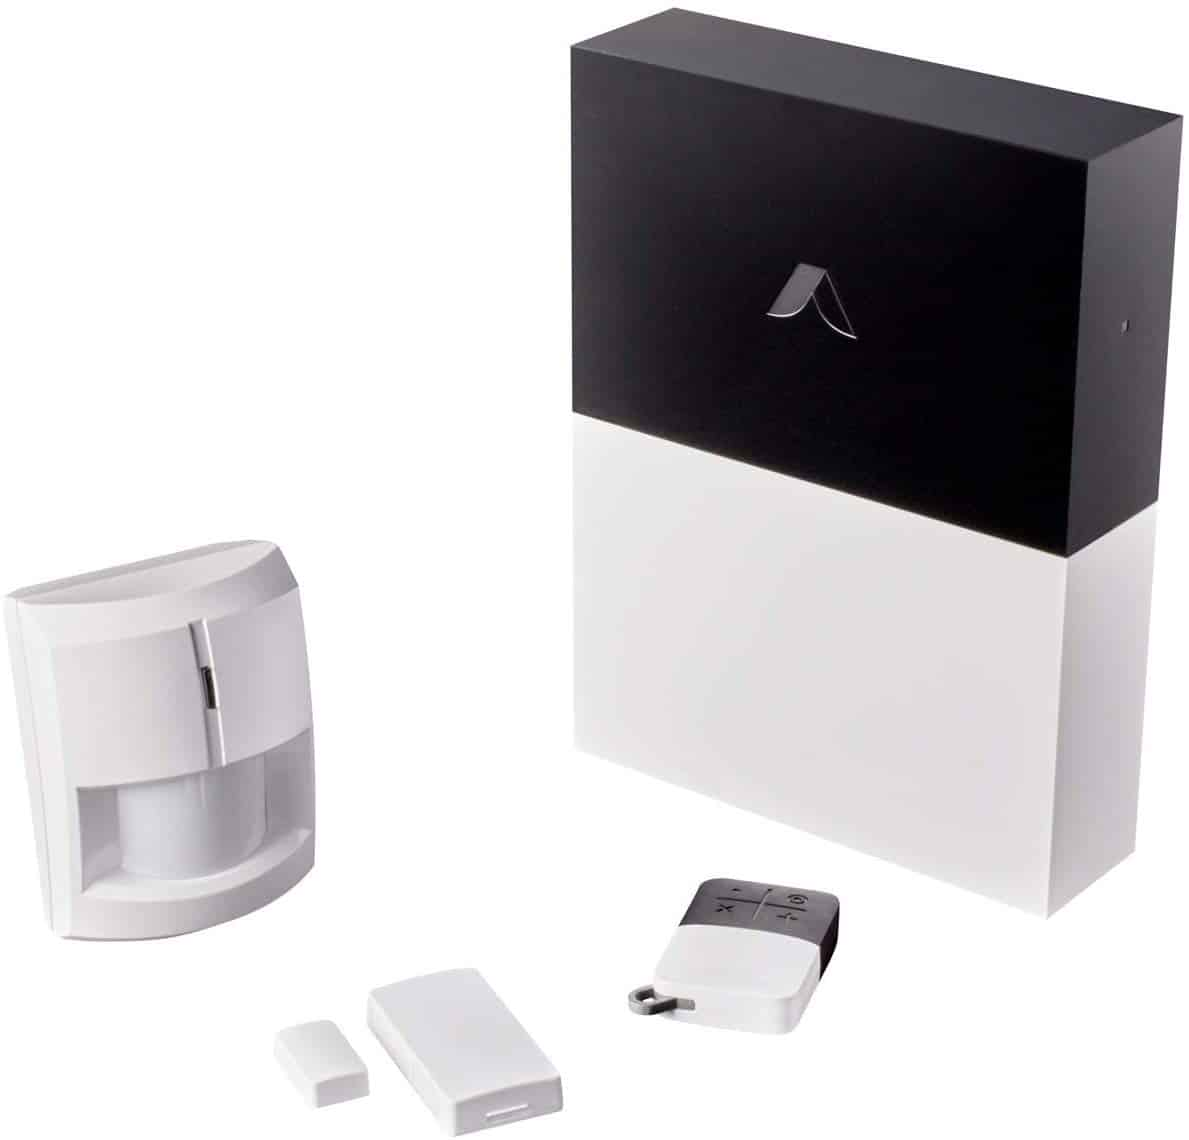 Picture of the abode z-wave security system on table with accessories